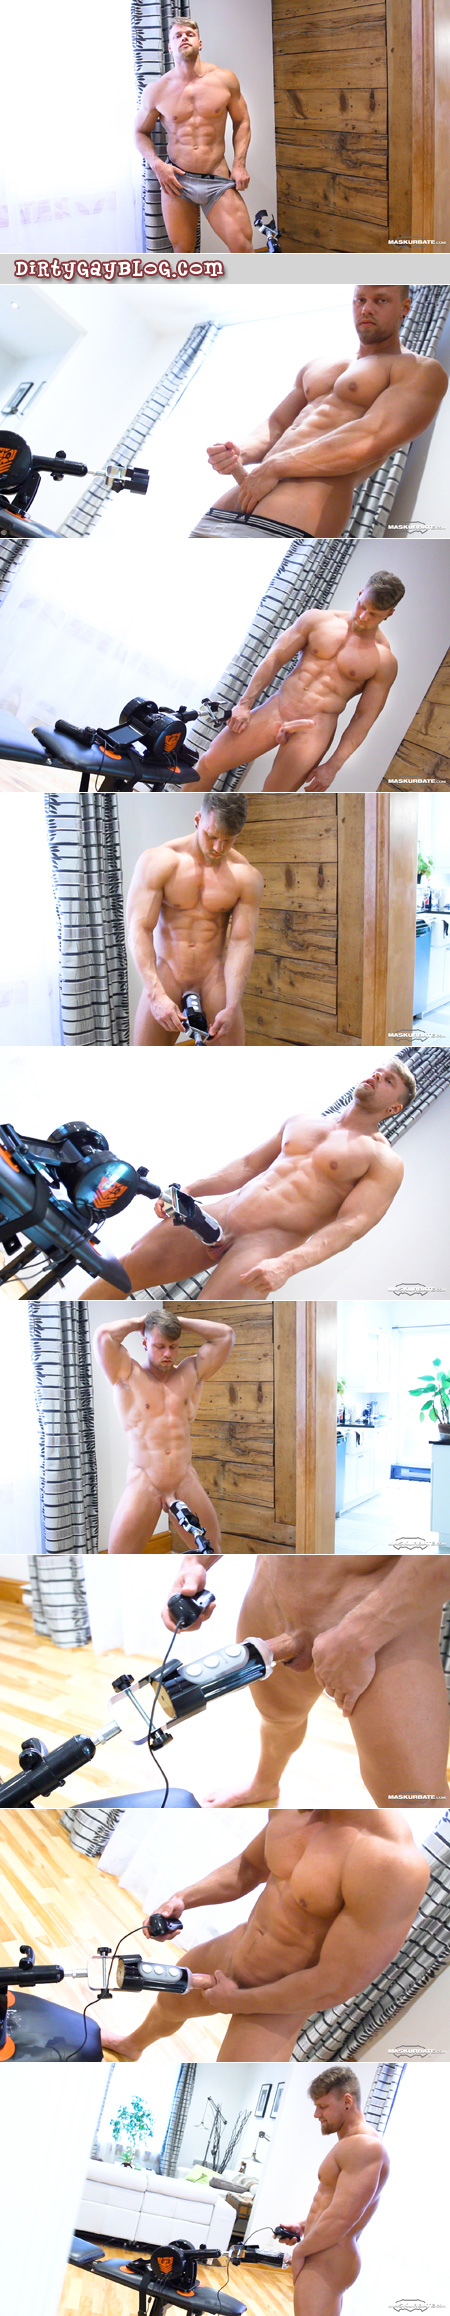 Smooth blonde bodybuilder getting his cock milked by a sex machine.